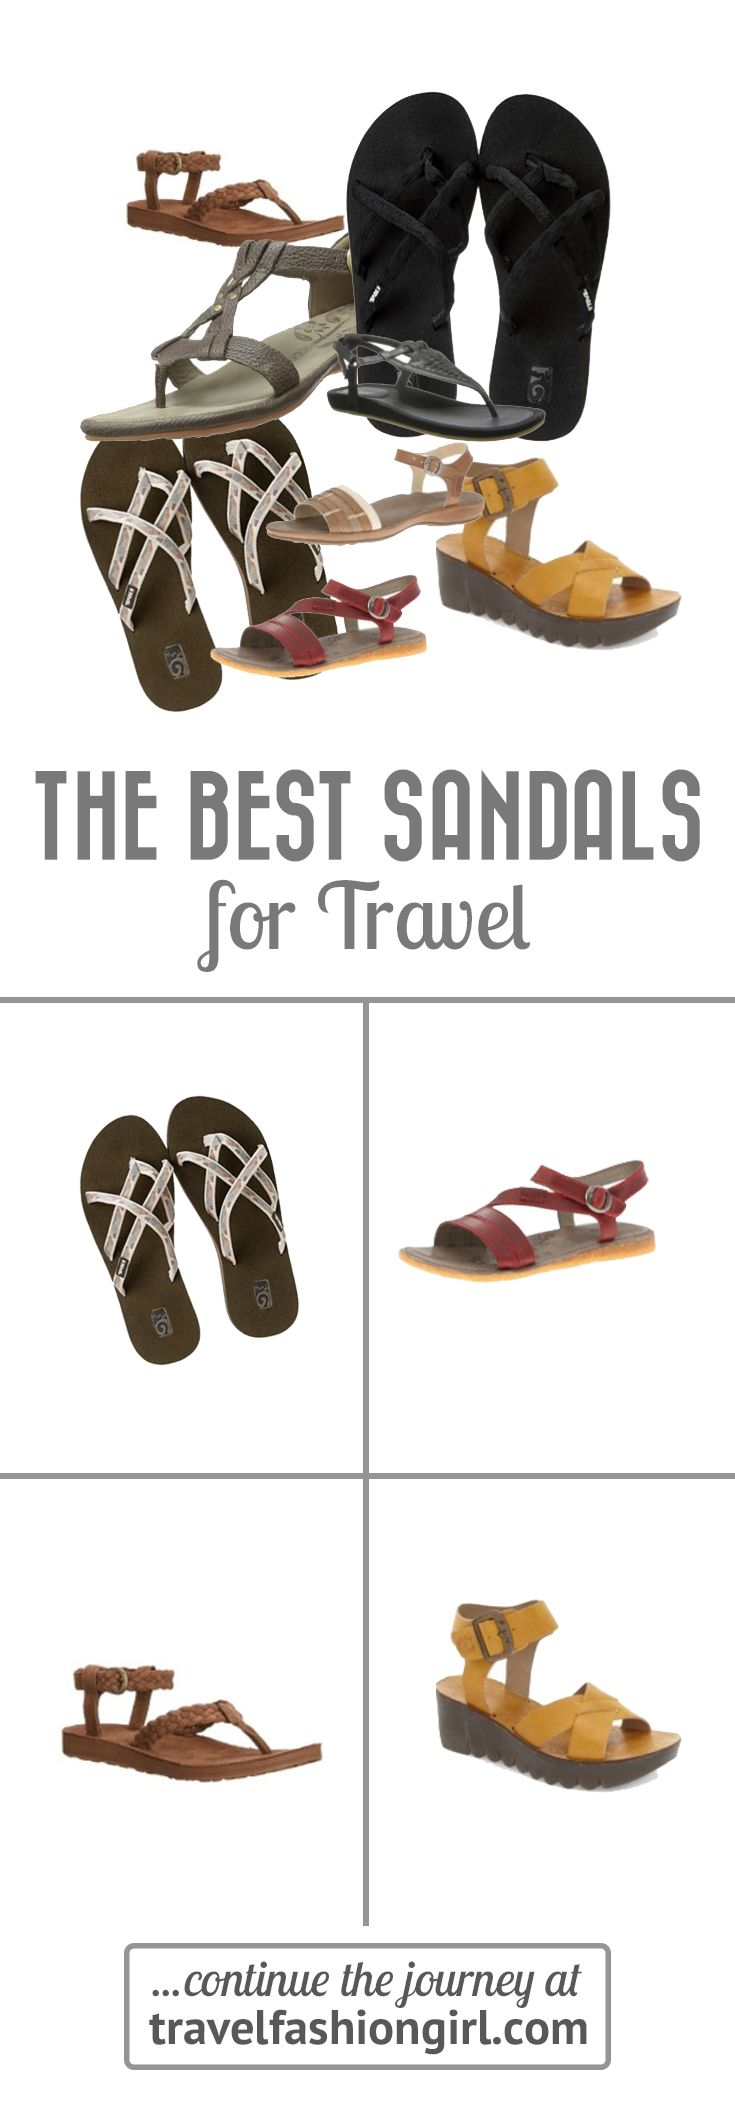 Best Sandals for Travel 2018: Shop 10 Cute and Comfortable Shoes